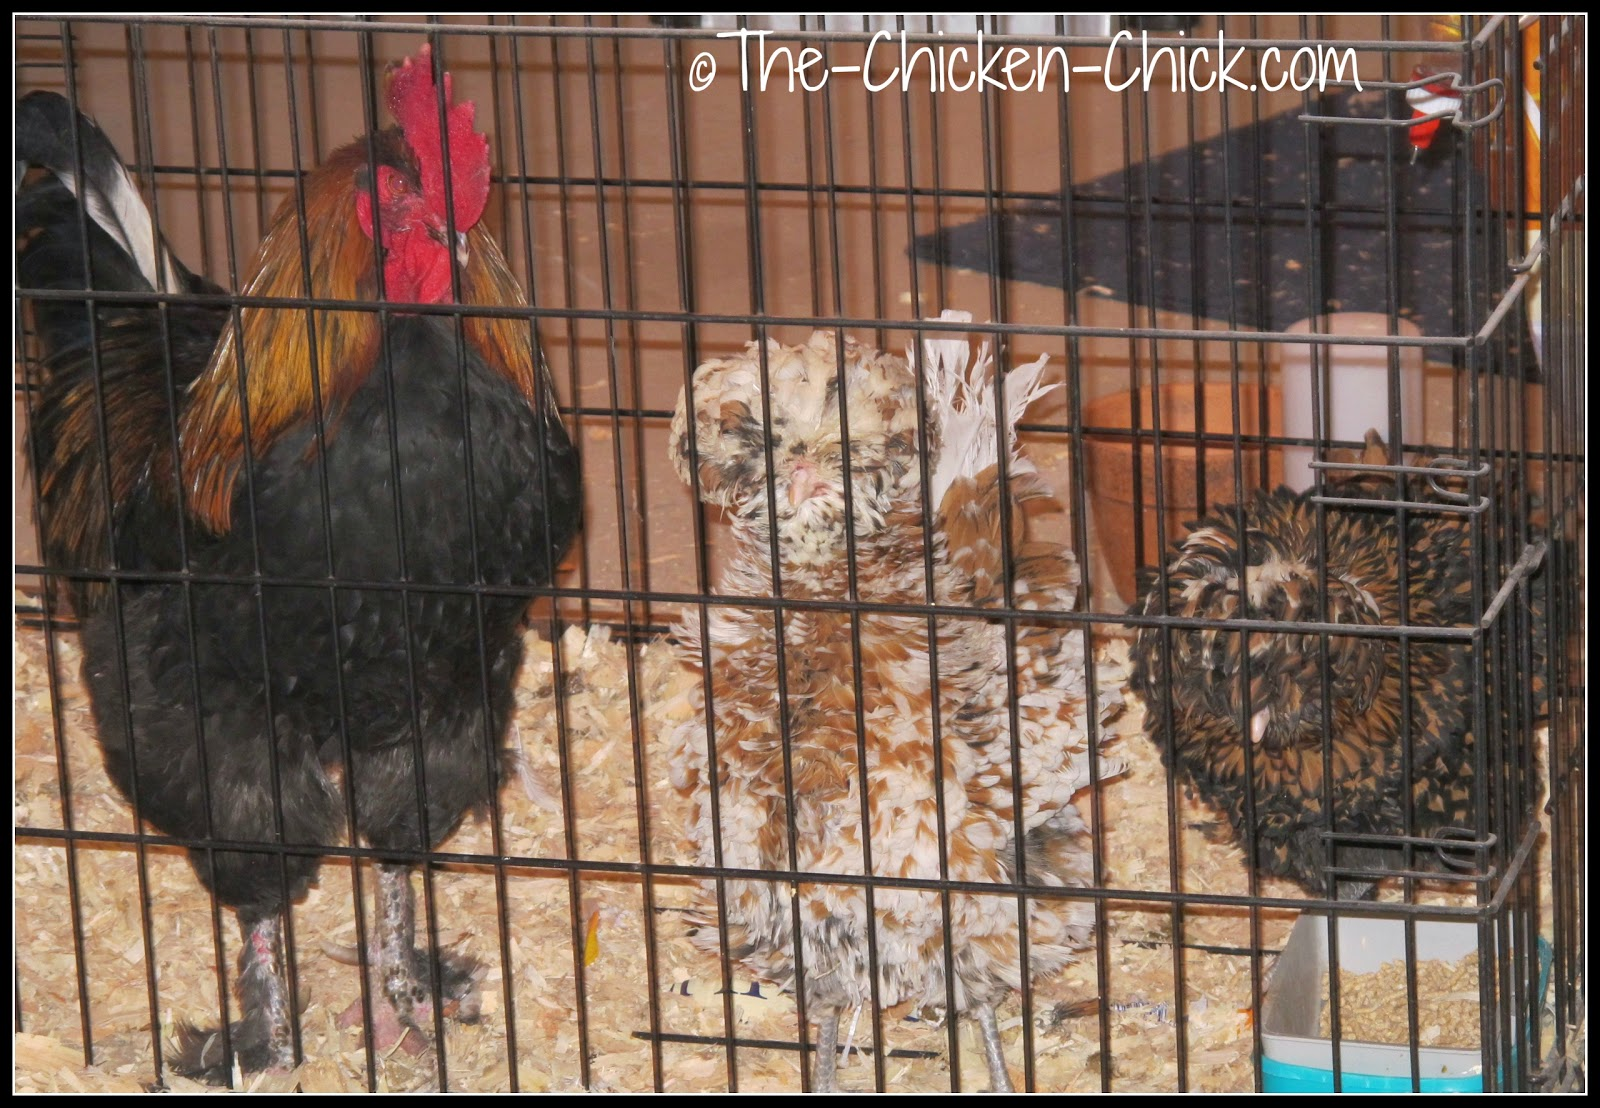 Blaze (Black Copper Marans rooster) has been in the infirmary while his frostbitten comb healed. Calista Flockheart & Ally McBeak (Tolbunt Polish Frizzle hens) shared the dog kennel with Blaze for a couple of weeks due to cabin-fever induced feather picking of their heads by flock members.